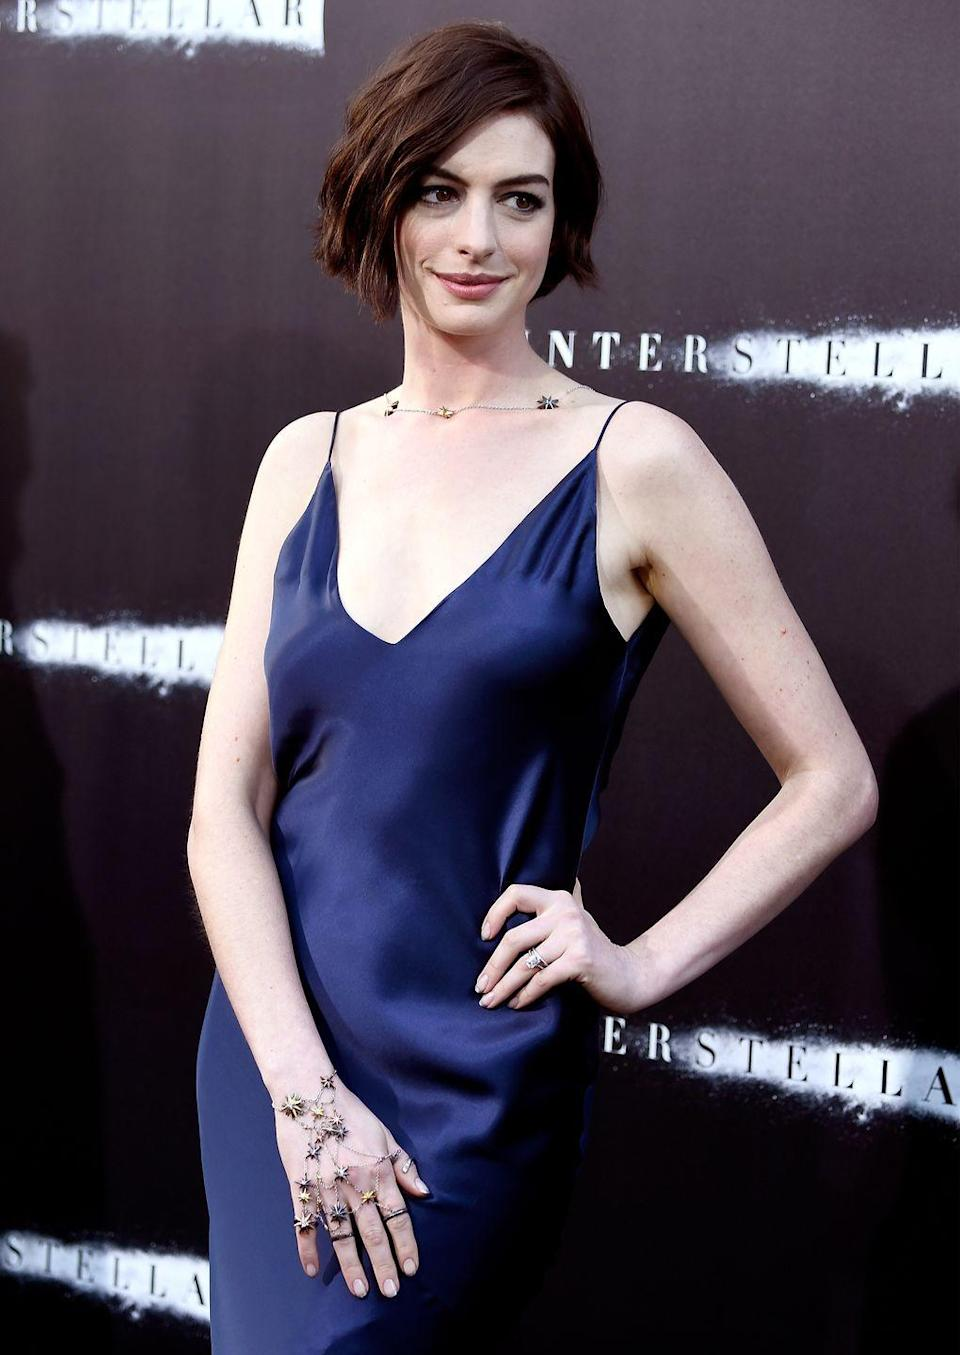 """<p>Anne Hathaway famously posted a picture of a pair of jeans she'd cut into shorts on <a href=""""https://www.instagram.com/p/BI3w8DYD2KH/?hl=en&taken-by=annehathaway"""" rel=""""nofollow noopener"""" target=""""_blank"""" data-ylk=""""slk:Instagram"""" class=""""link rapid-noclick-resp"""">Instagram</a> a few months after giving birth to son Jonathan in 2016. 'There is no shame in gaining weight during pregnancy (or ever),' she wrote. </p><p>'There is no shame if it takes longer than you think it will to lose the weight (if you want to lose it at all). There is no shame in finally breaking down and making your own jean shorts because last summer's are just too dang short for this summer's thighs. Bodies change. Bodies grow. Bodies shrink. It's all love (don't let anyone tell you otherwise.)'</p>"""